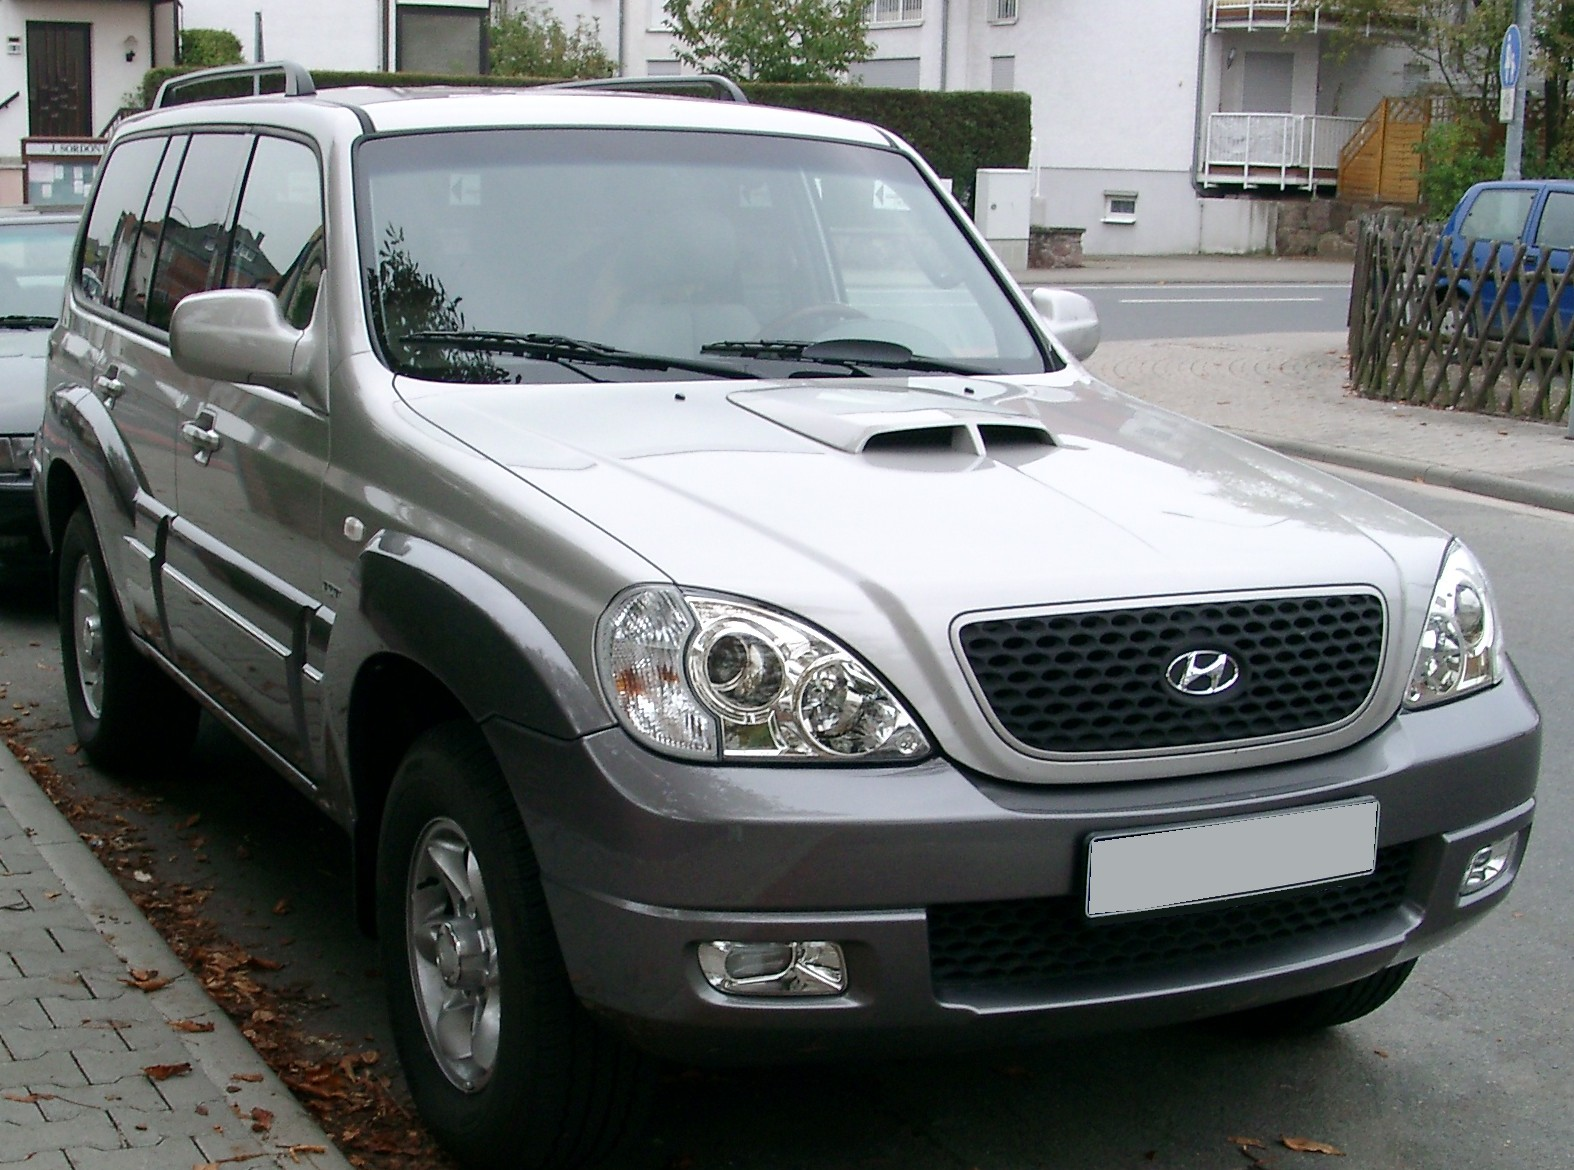 hyundai terracan wikipedia hyundai terracan wikipedia